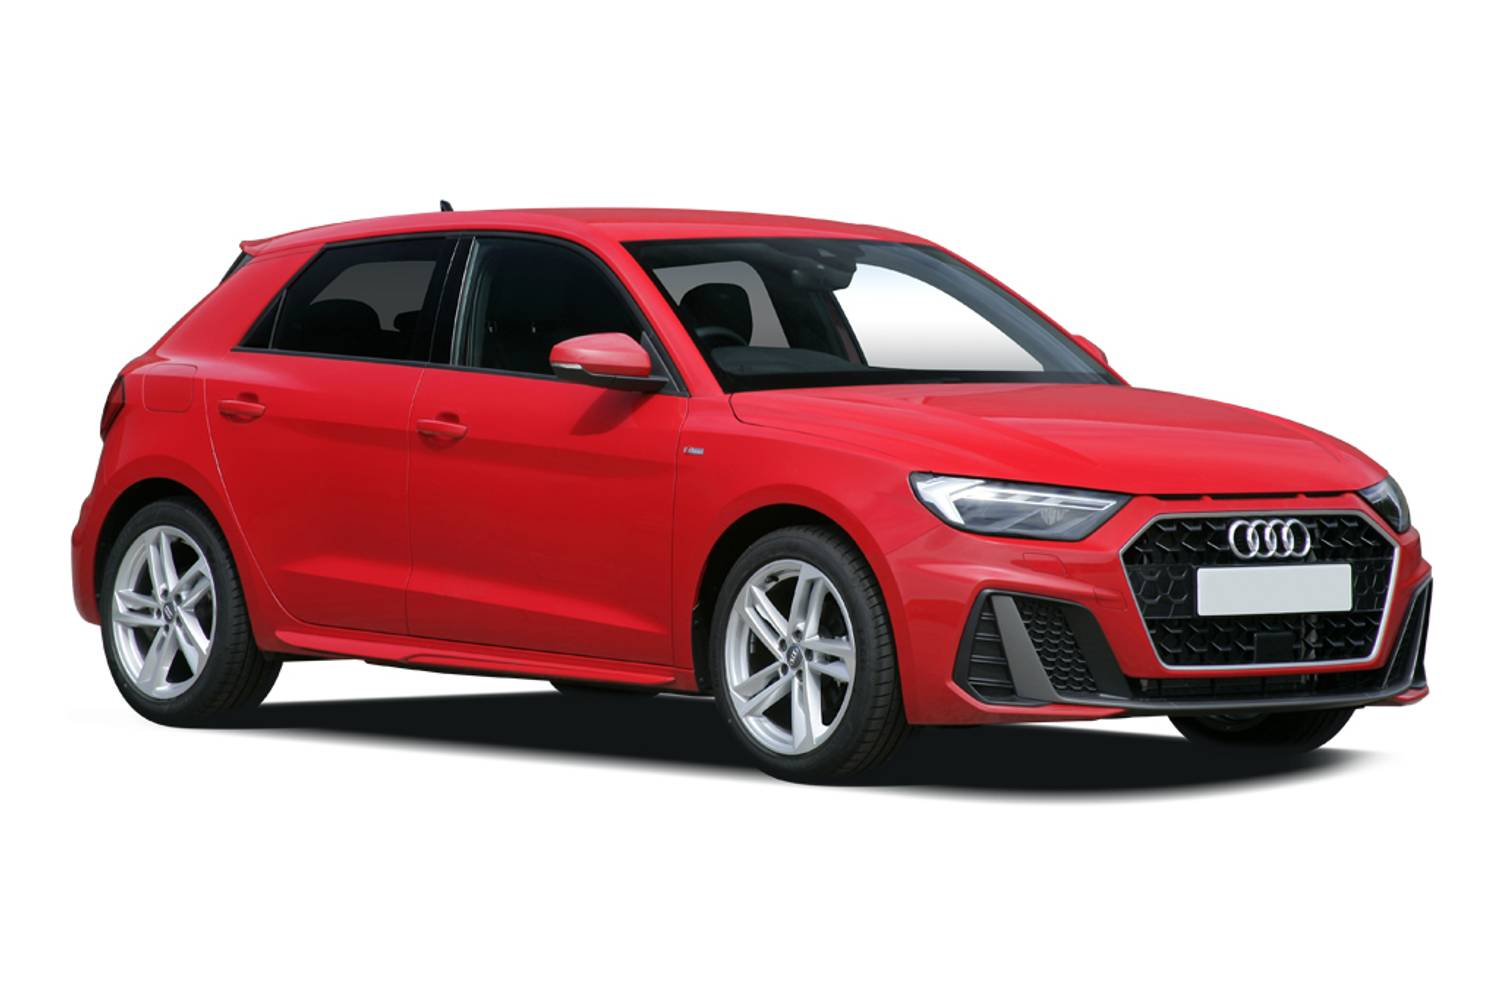 New Audi A1 Sportback 25 Tfsi S Line 5 Door Tech Pack 2019 For Sale